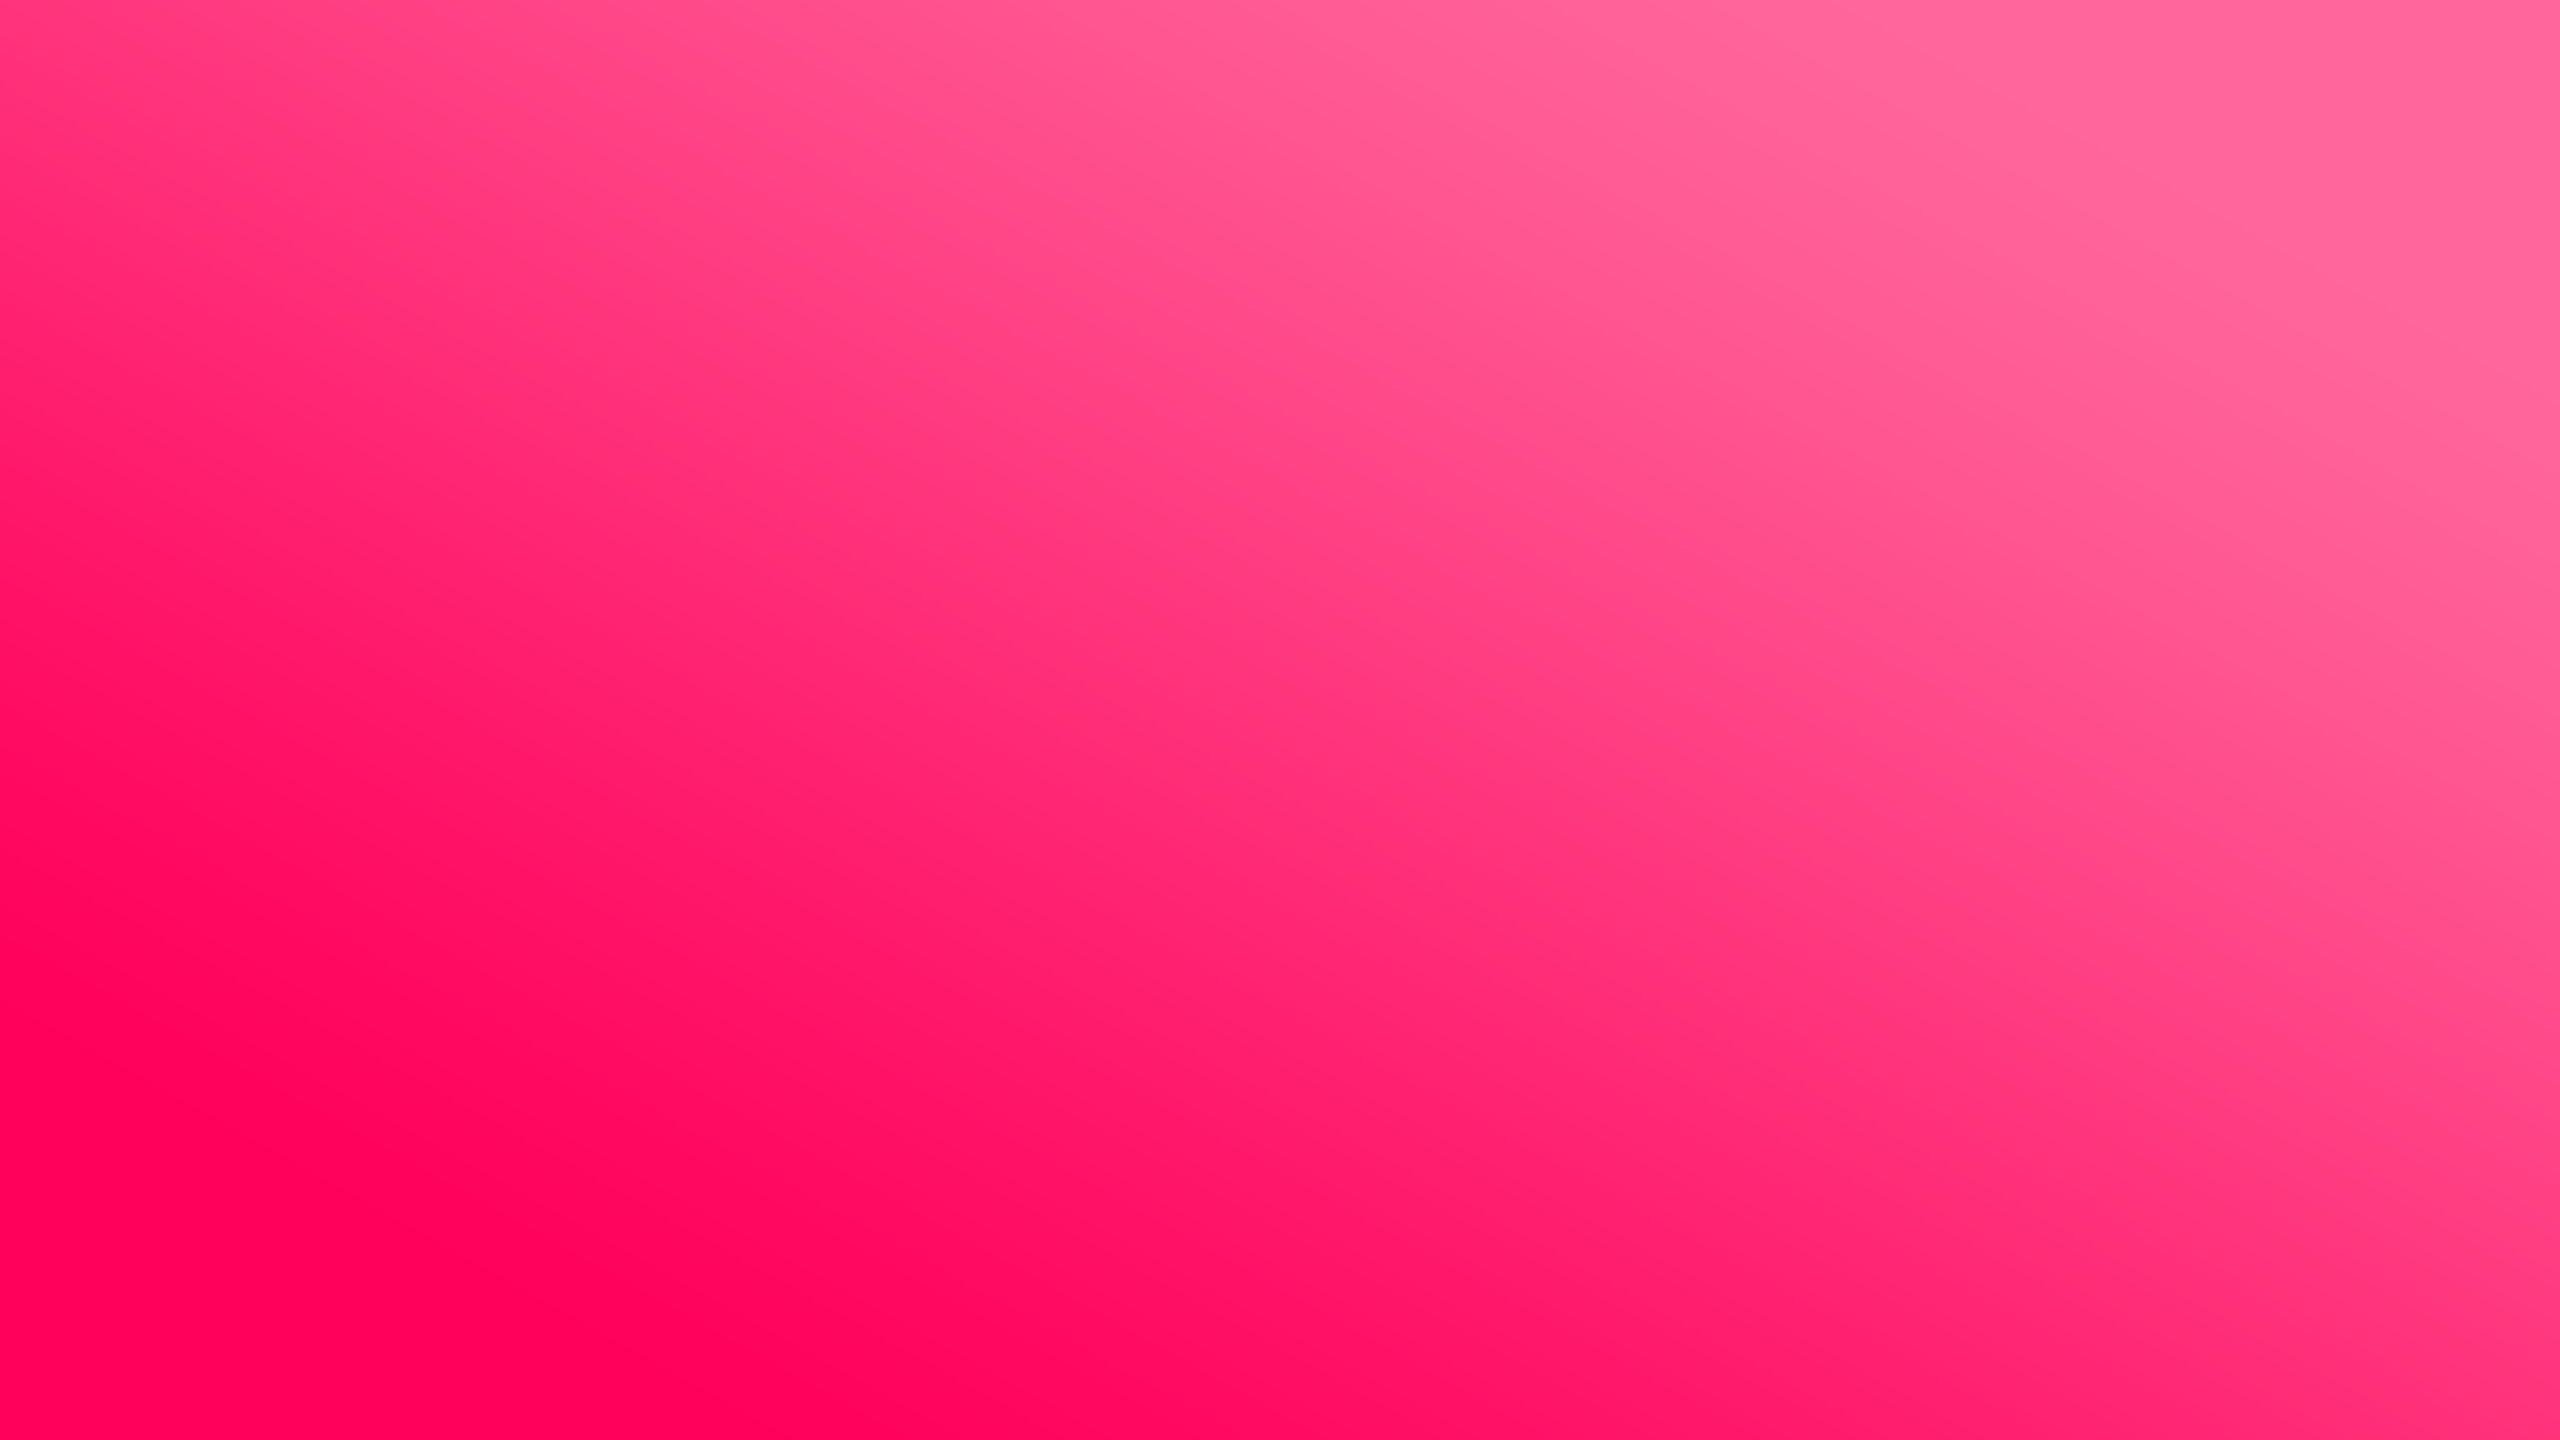 pink_background_images